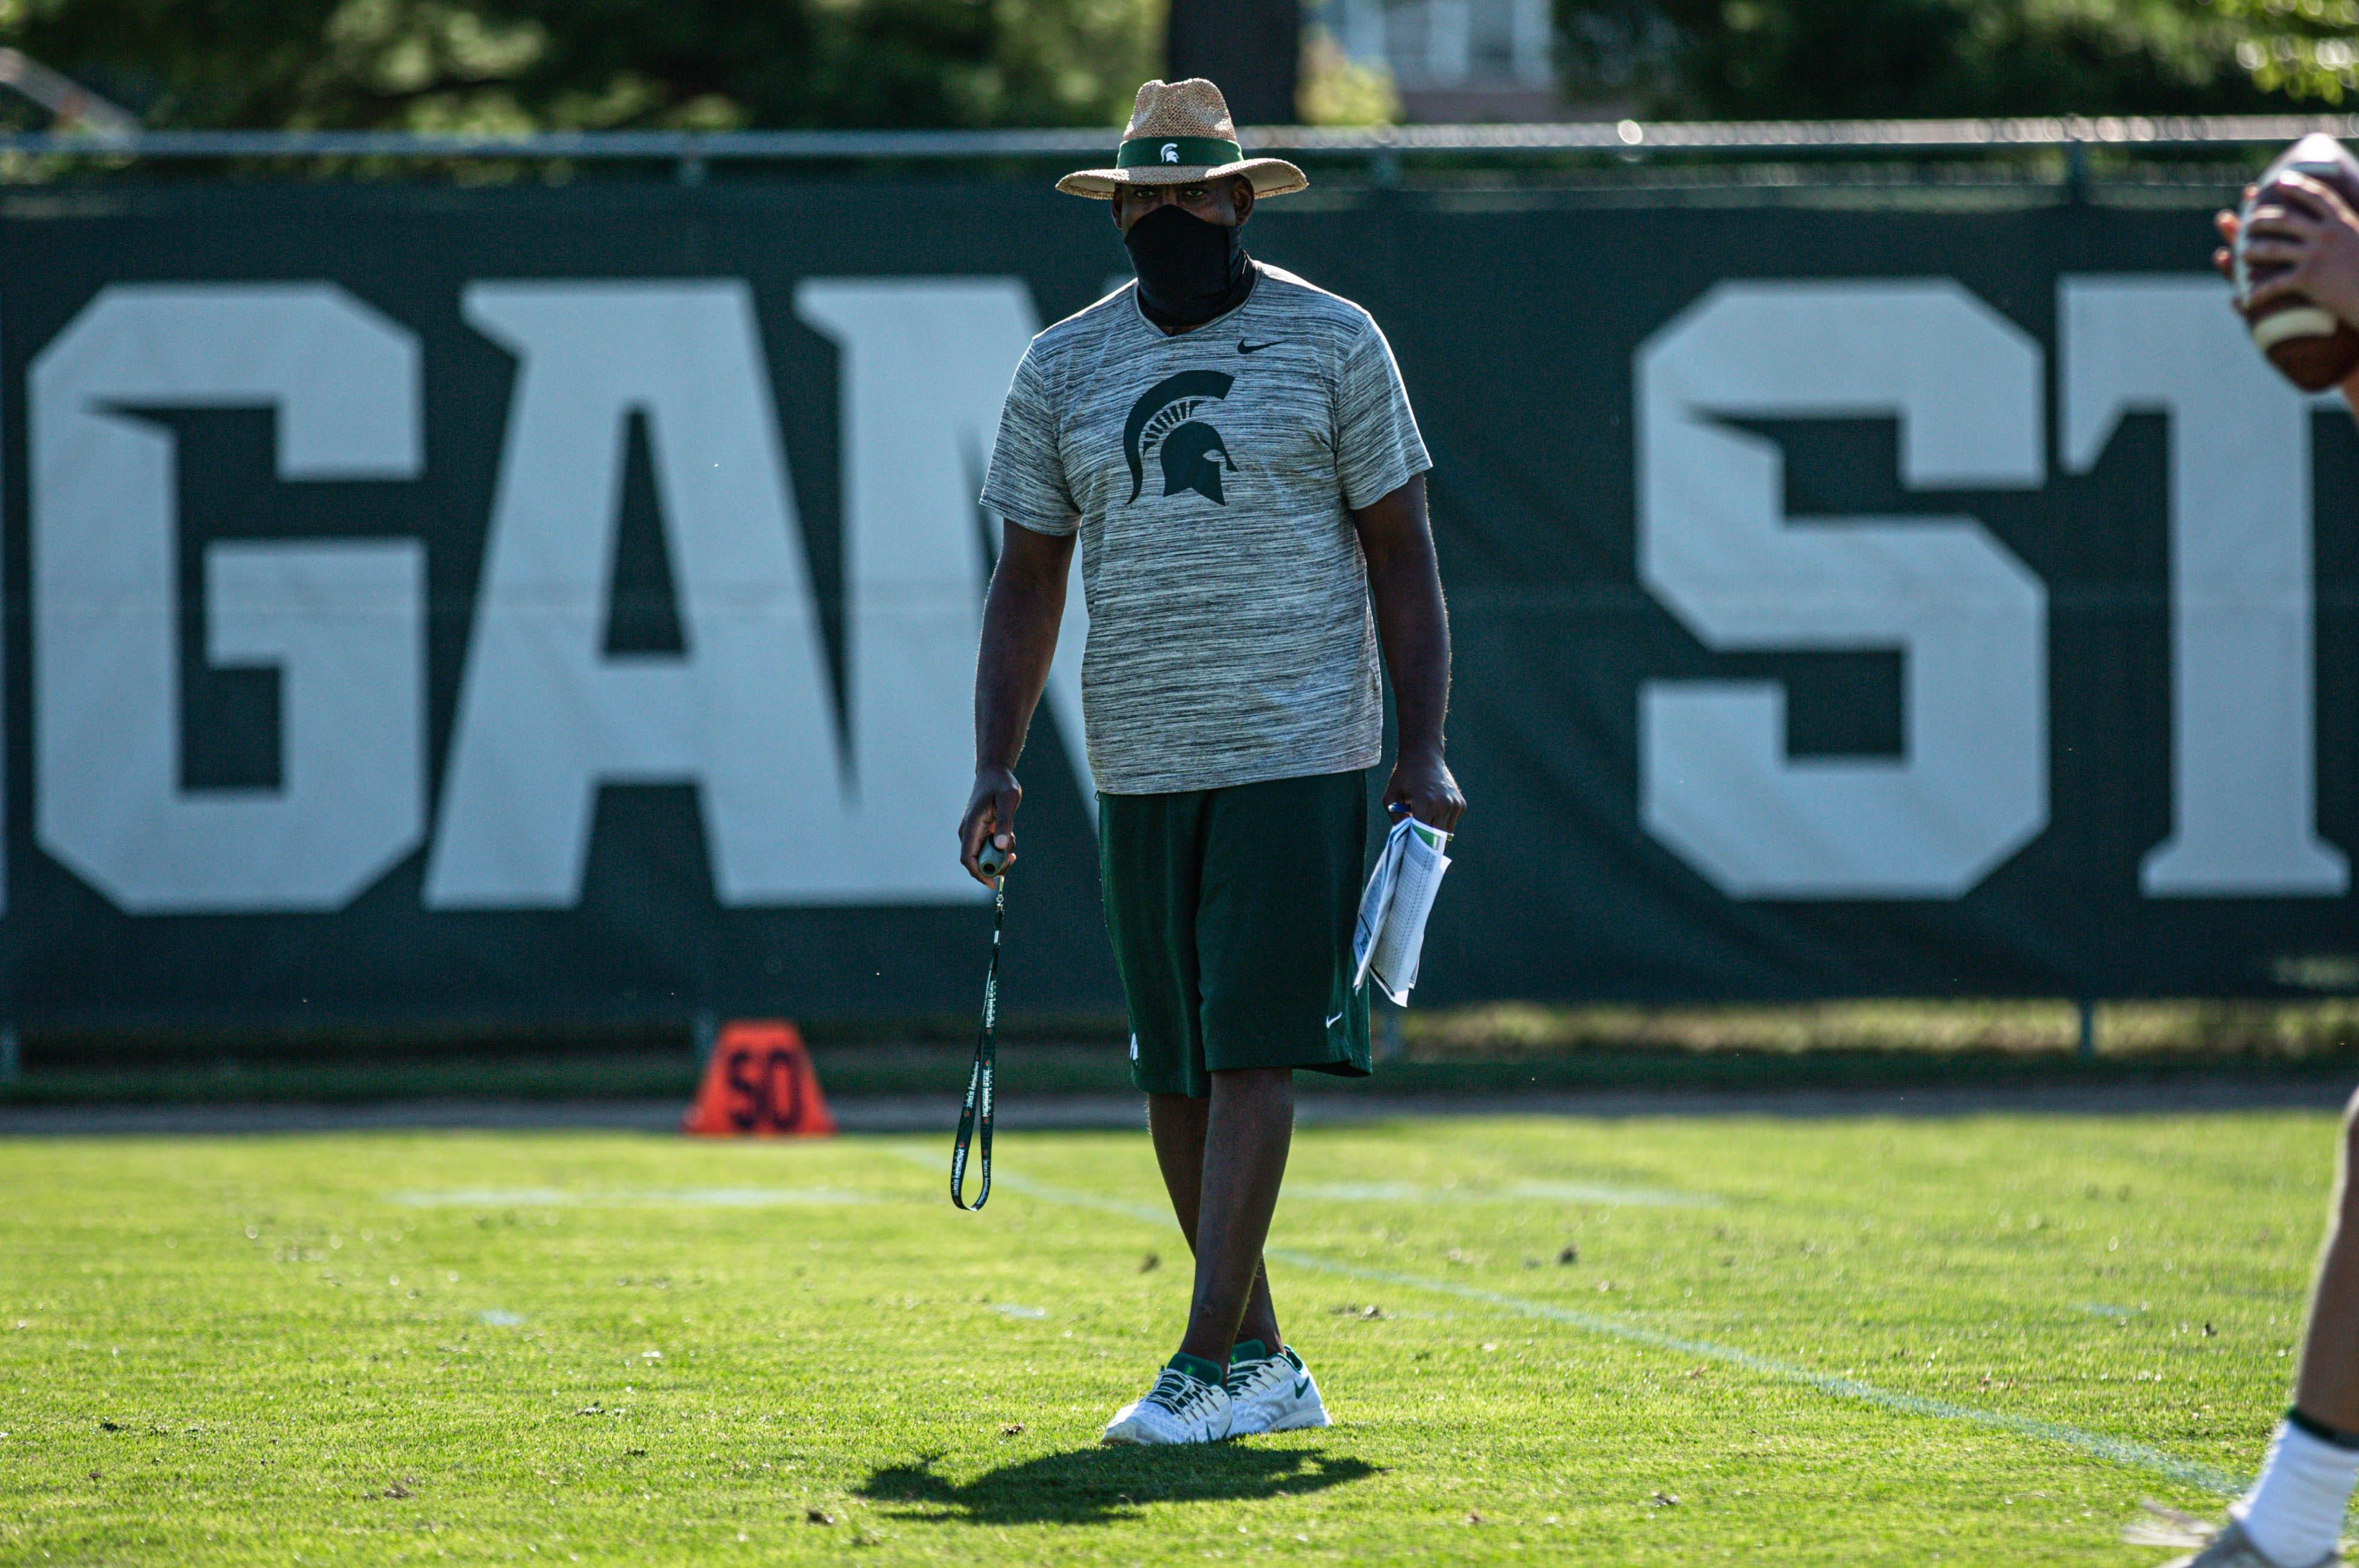 Michigan State Football Coach Mel Tucker Opens Camp With Focus On Rep Chart In 2020 Michigan State Football Football Coach Michigan Sports